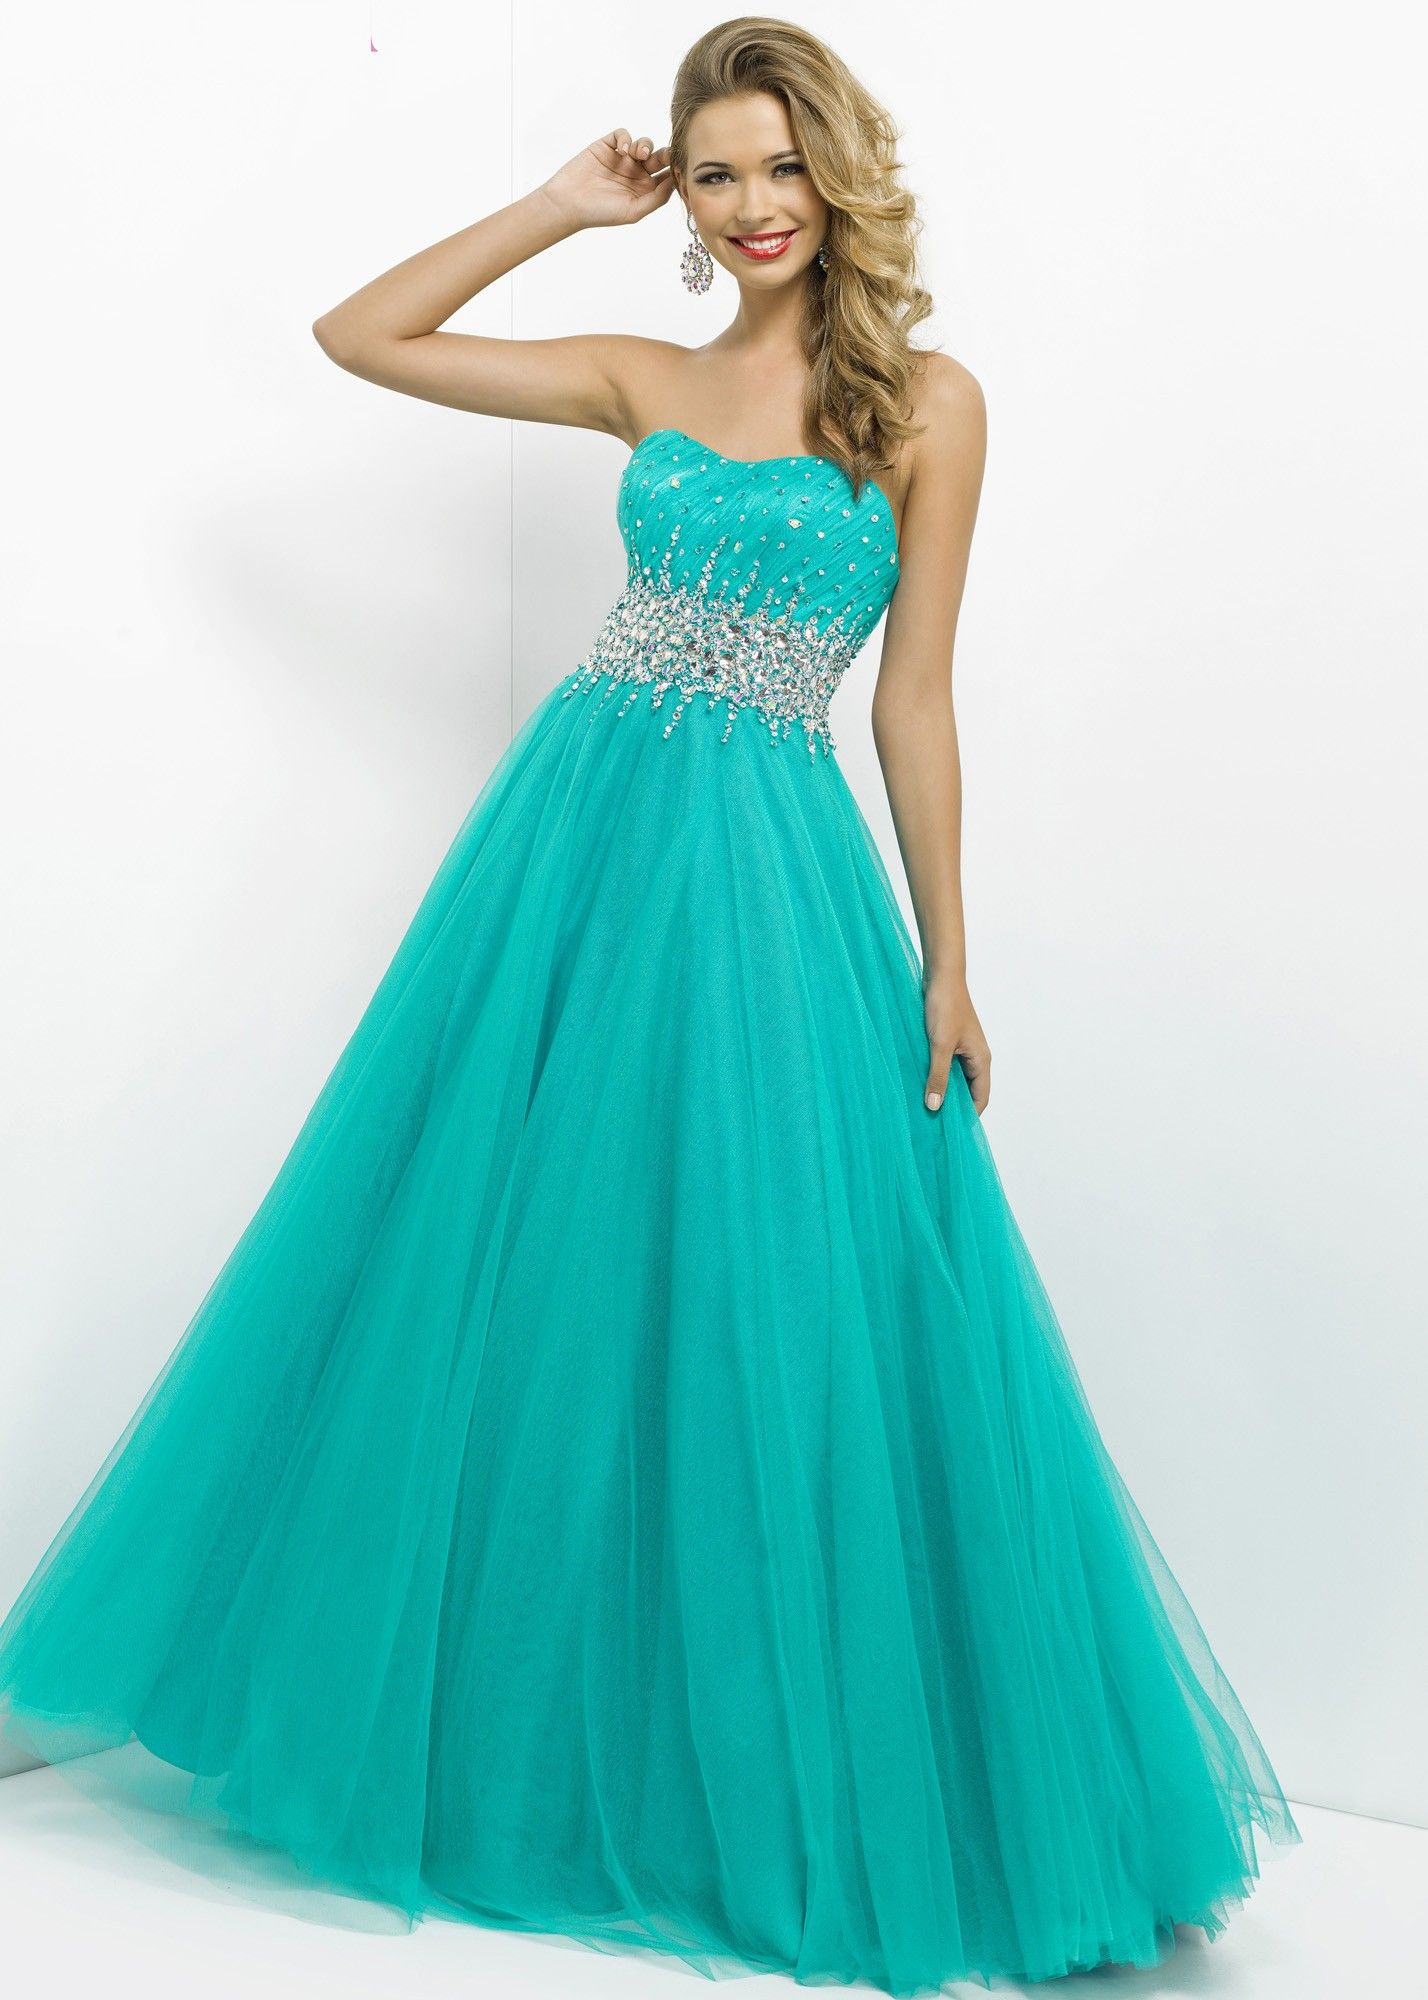 Natural Waist Floor-Length Sweetheart Prom Dress picture 3 | Prom ...